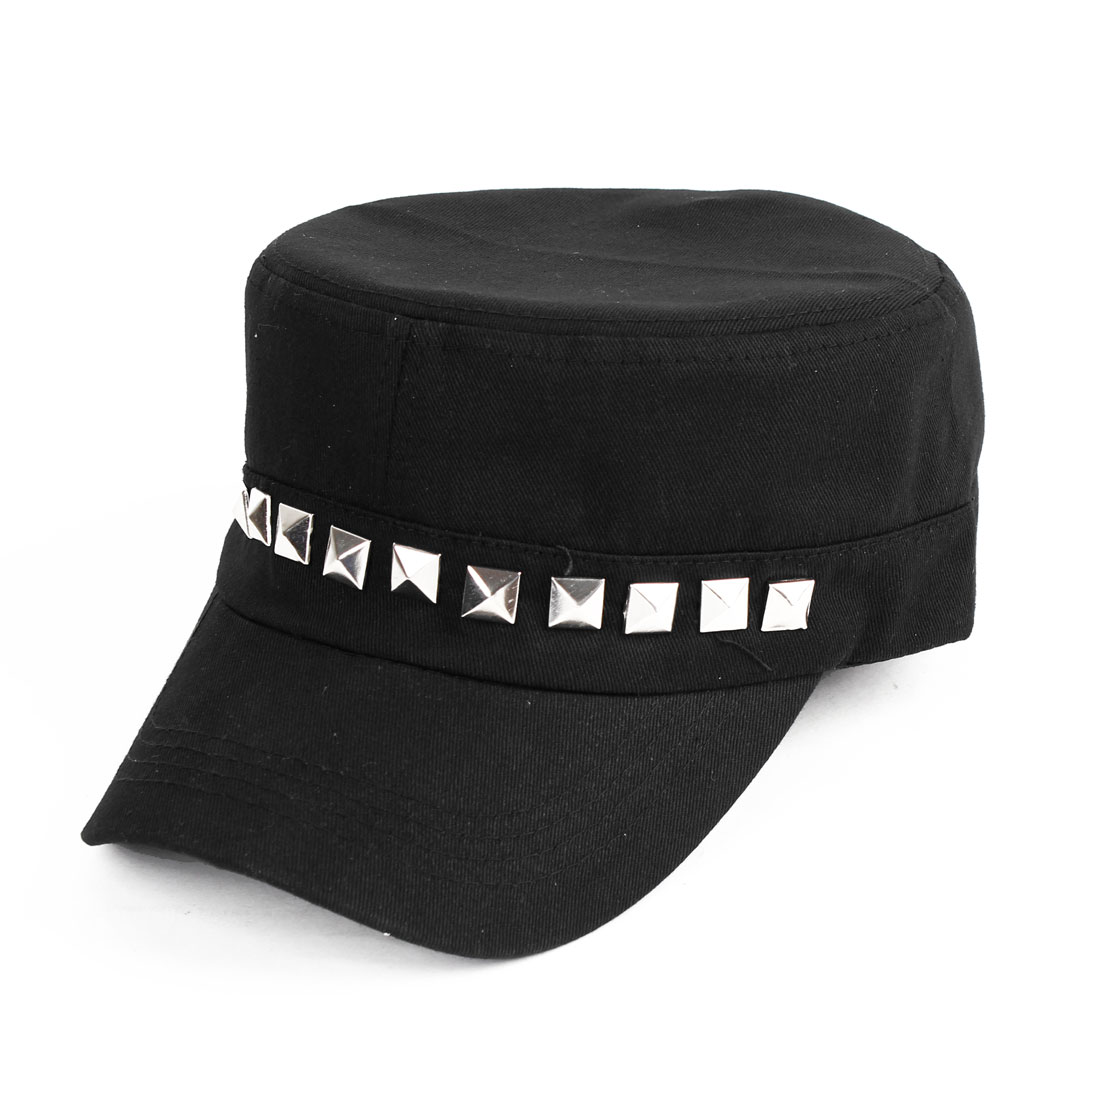 Unisex Rivet Decor Sun Visor Design Denim Baseball Cap Hat Black